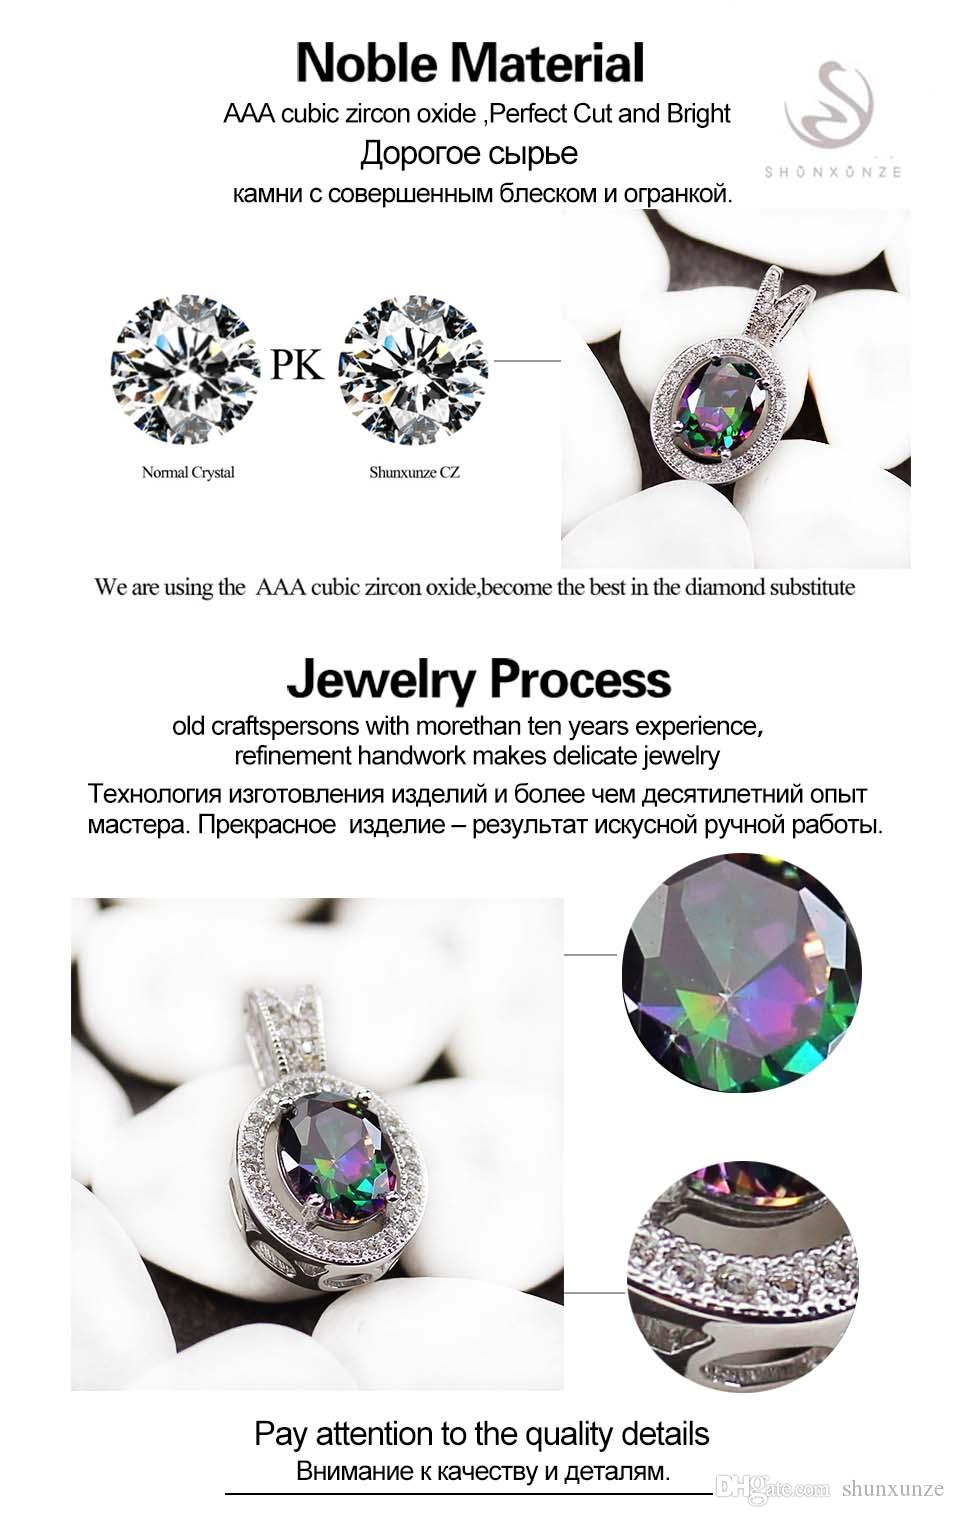 Trendy Rainbow Mystic Cubic Zirconia Fashion Micro inlays jewelry Silver Plated Pendants R3231 Promotion Favourite Best Sellers Vintage